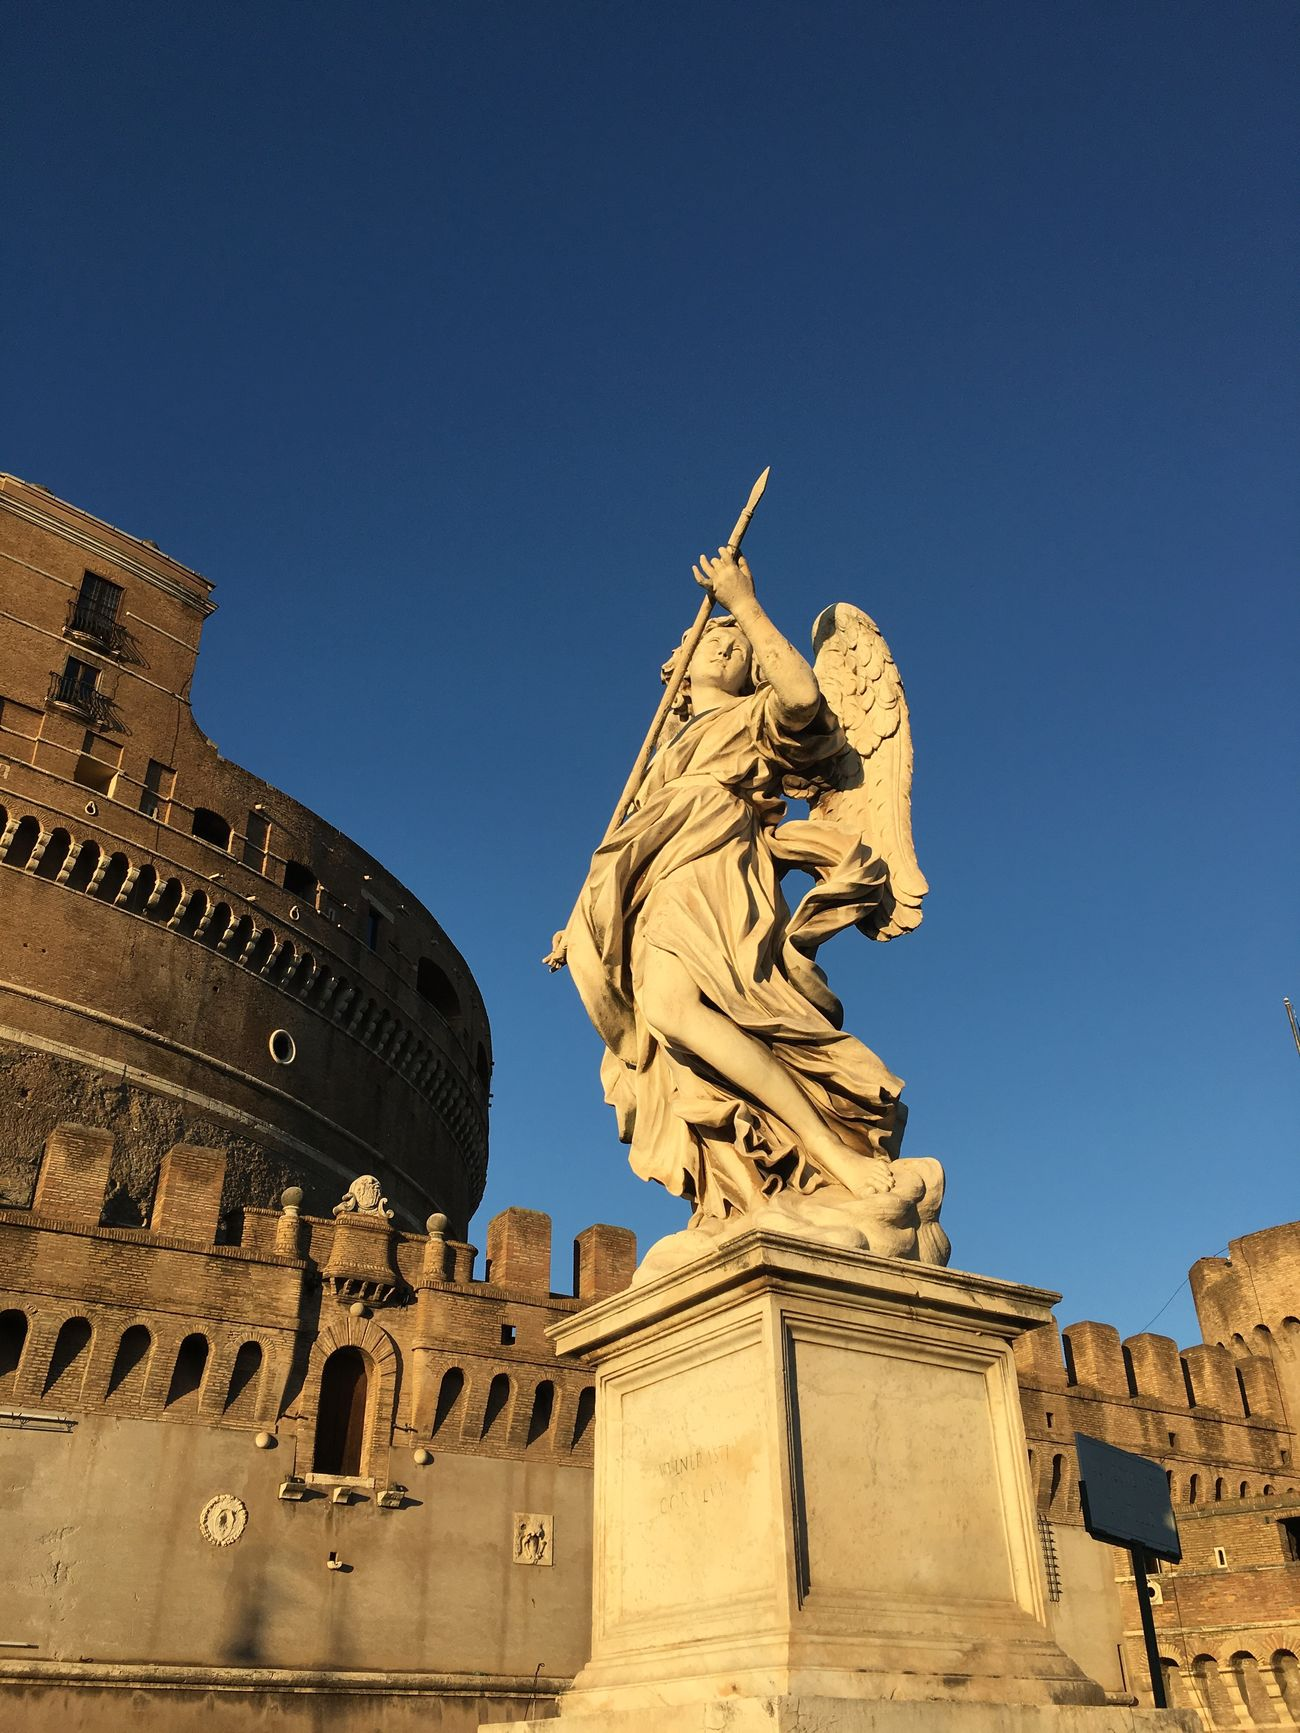 Roma Statue Clear Sky Architecture Creativity Building Exterior Sky Travel Destinations No People